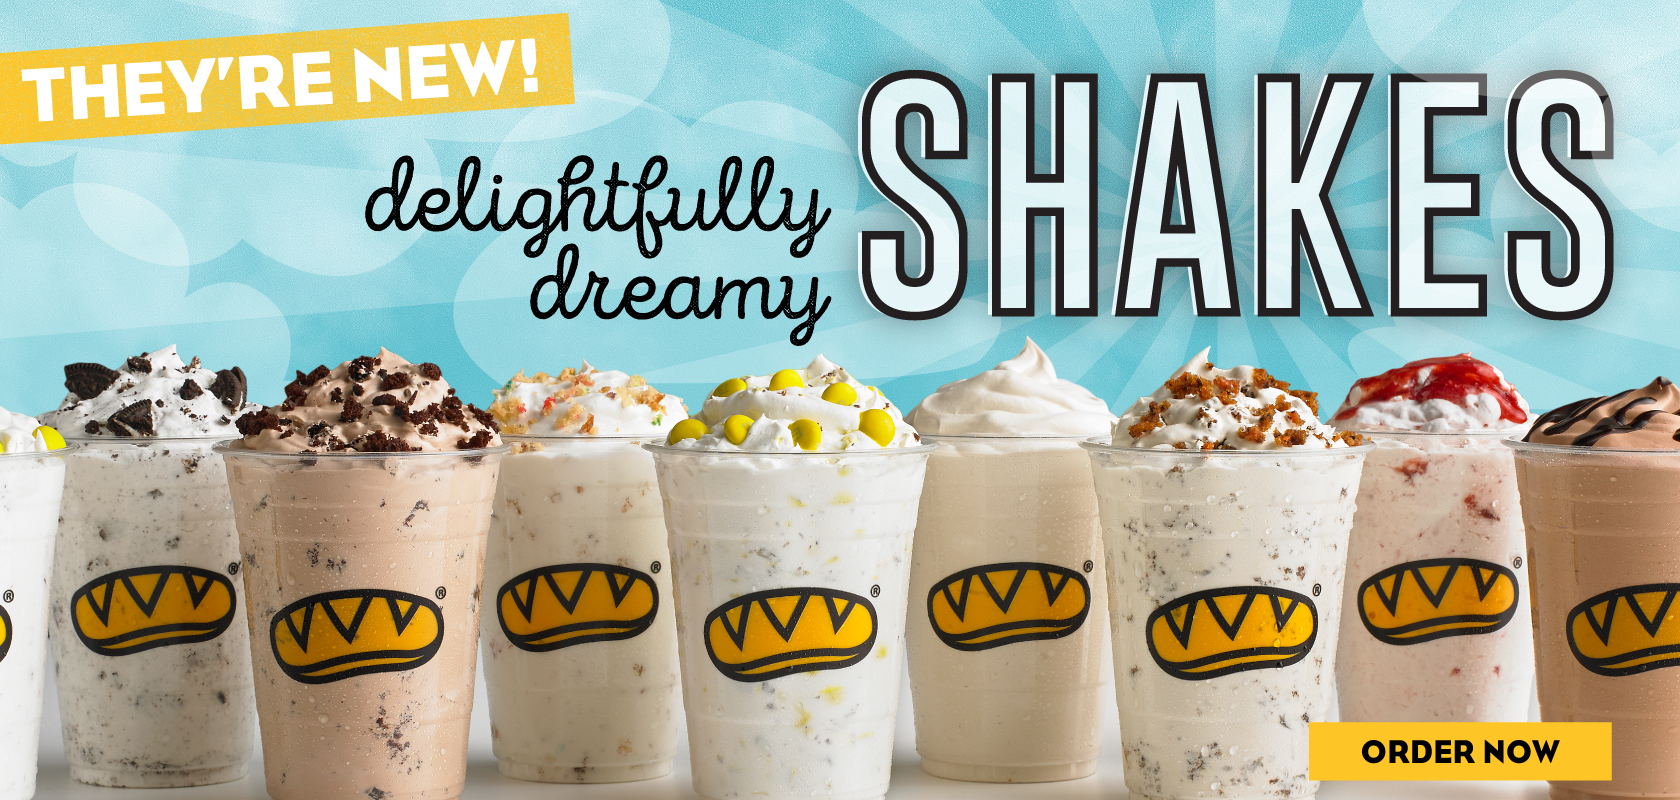 Delightfully dreamy SHAKES! They're new! Order now.